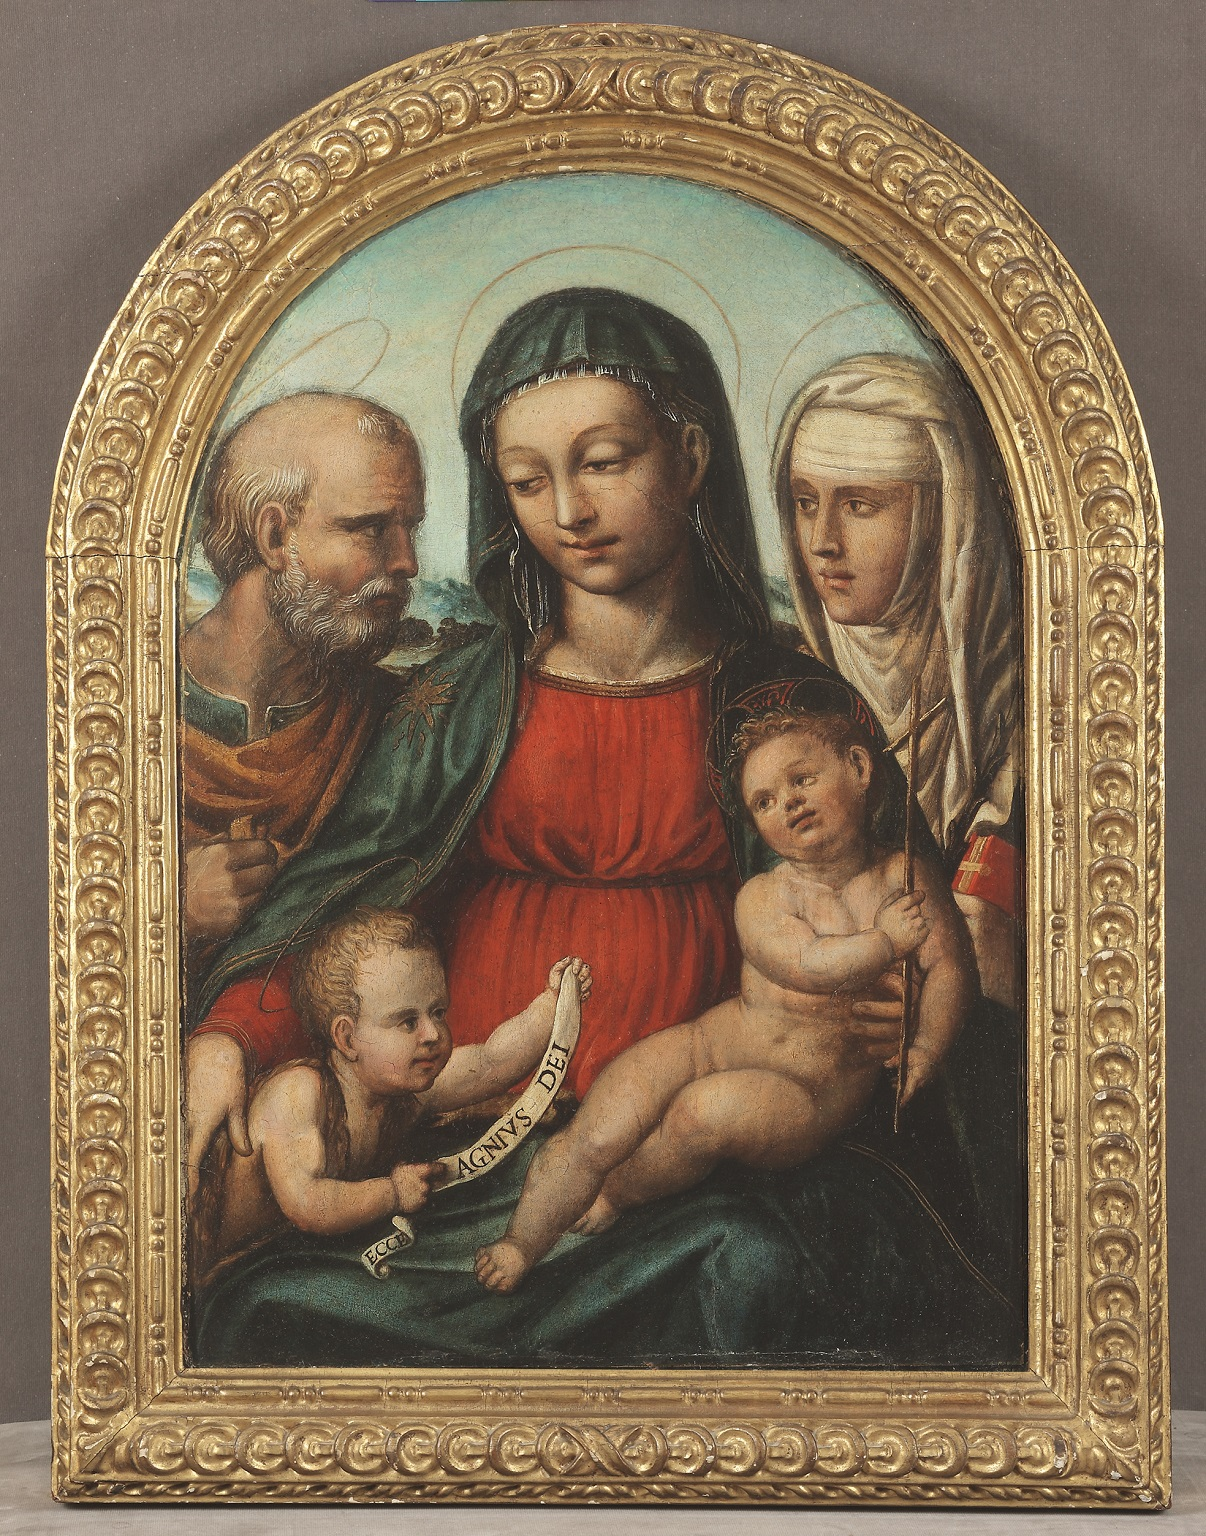 BARTOLOMEO DI DAVID   (Siena, 1482 – 1545/6)     Holy Family with St. John the Baptist and St. Catherine of Siena   Oil on panel  24 ¼ x 16 inches  (61.6 x 40.4 cm)